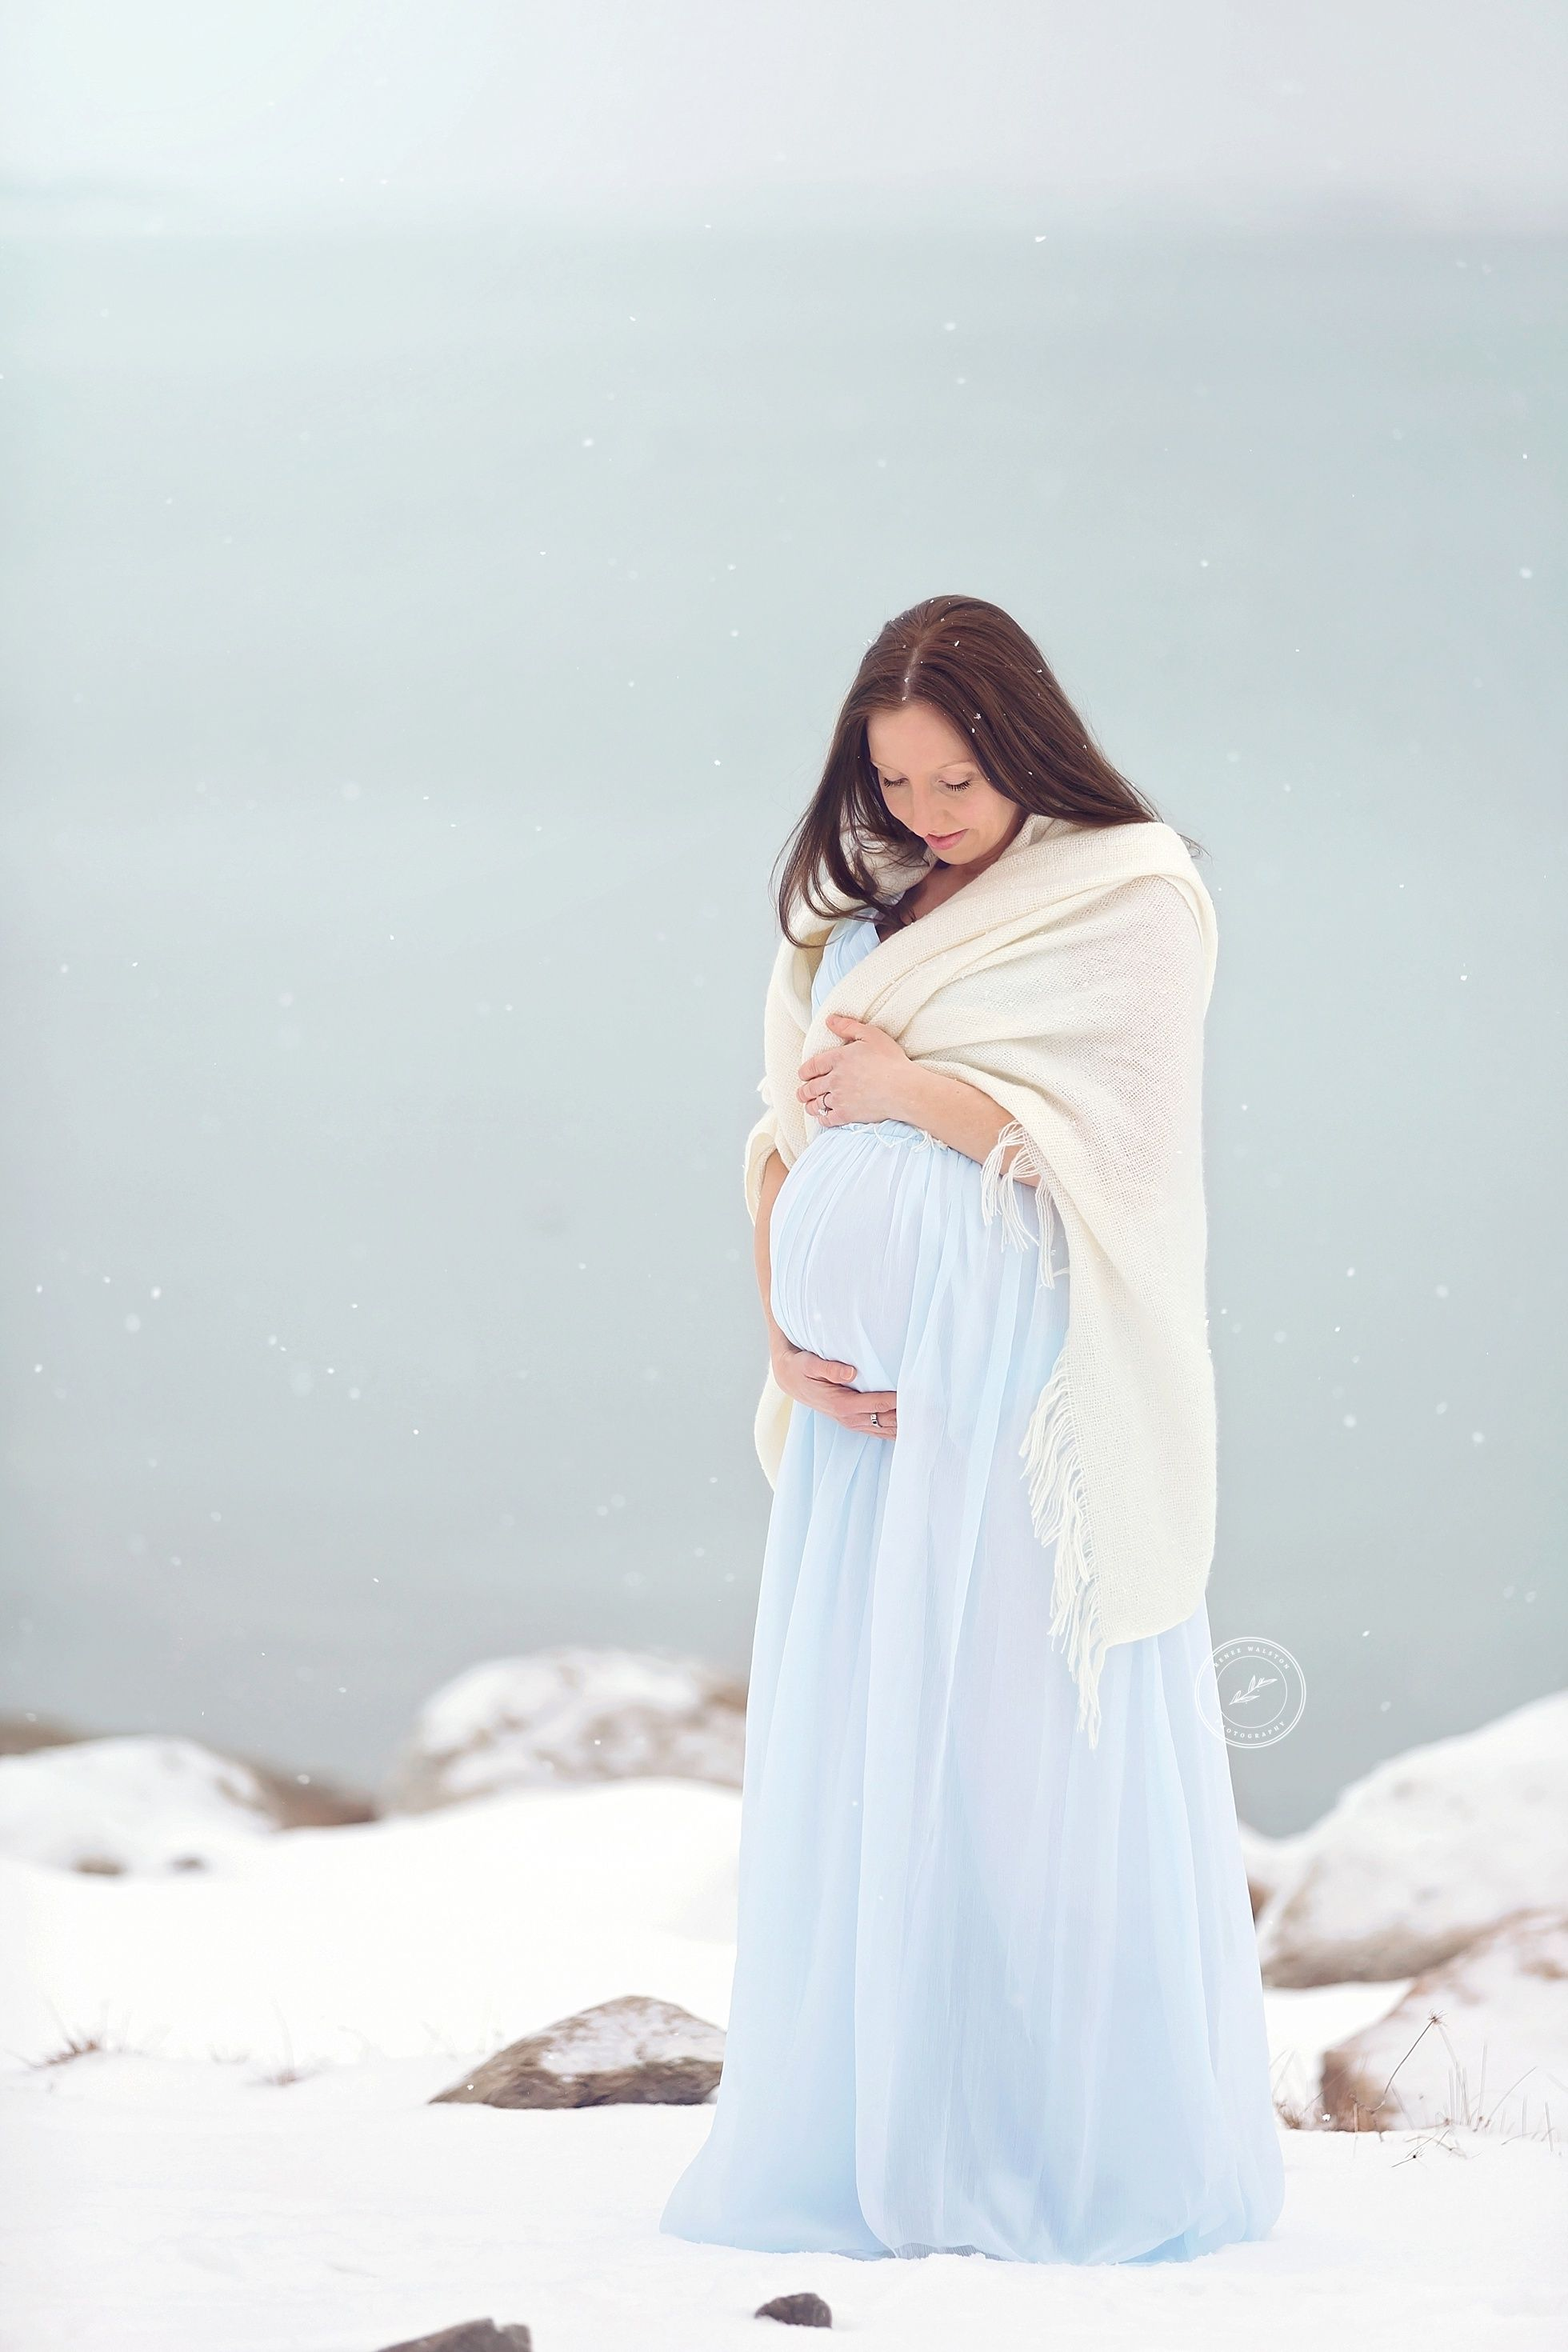 Winter maternity photos on the beach in the snow - Renee Walston Photography - Cape Cod Maternity and Newborn Photographer